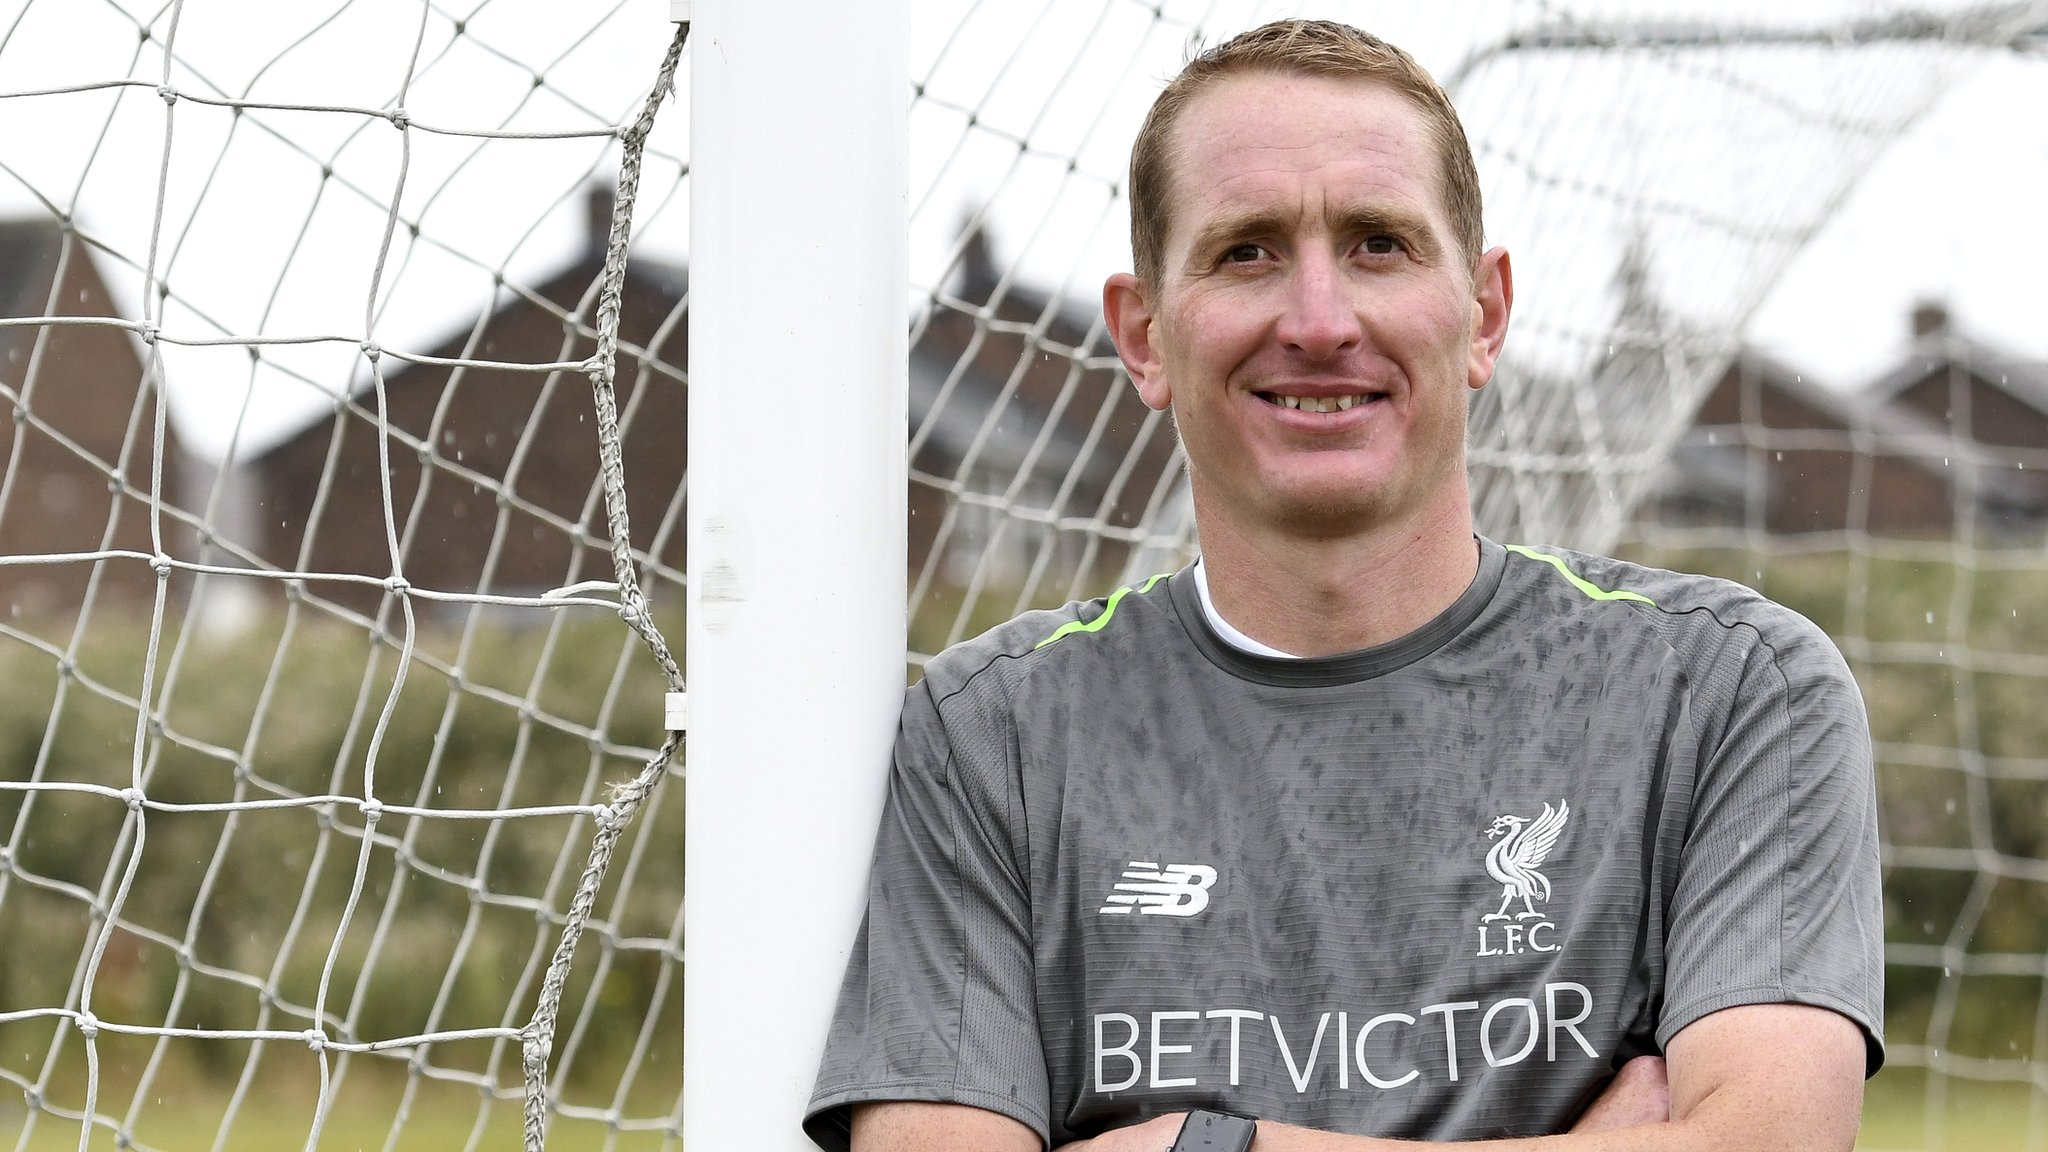 Liverpool back women's team but 'things need to improve' - Kirkland